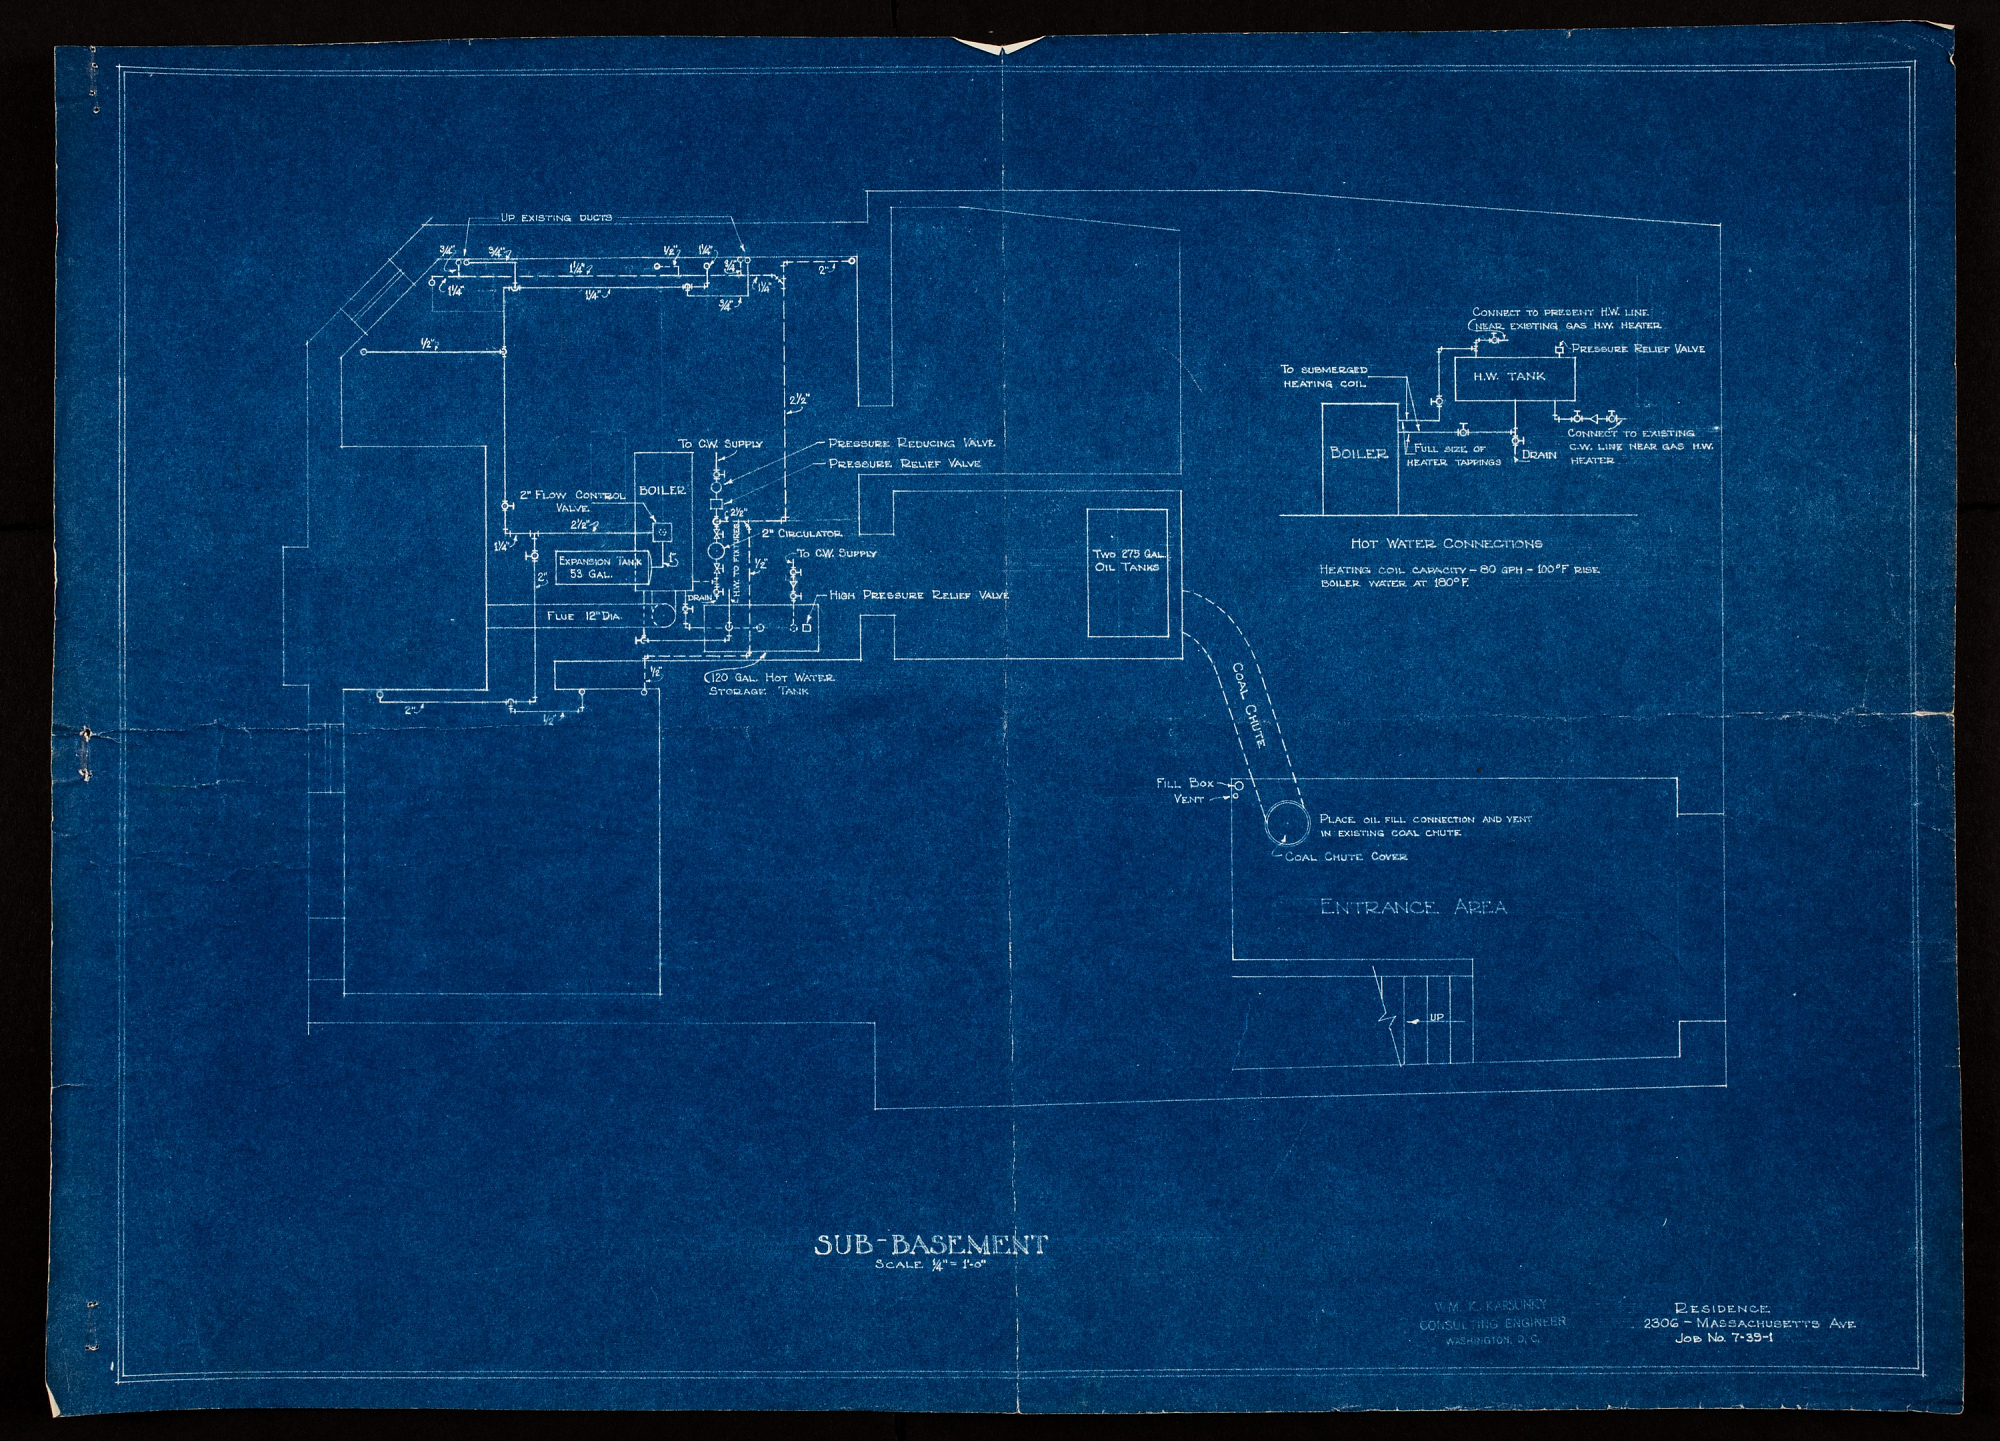 Sub-Basement plan showing mechanicals including boiler room, oil tanks, and more.